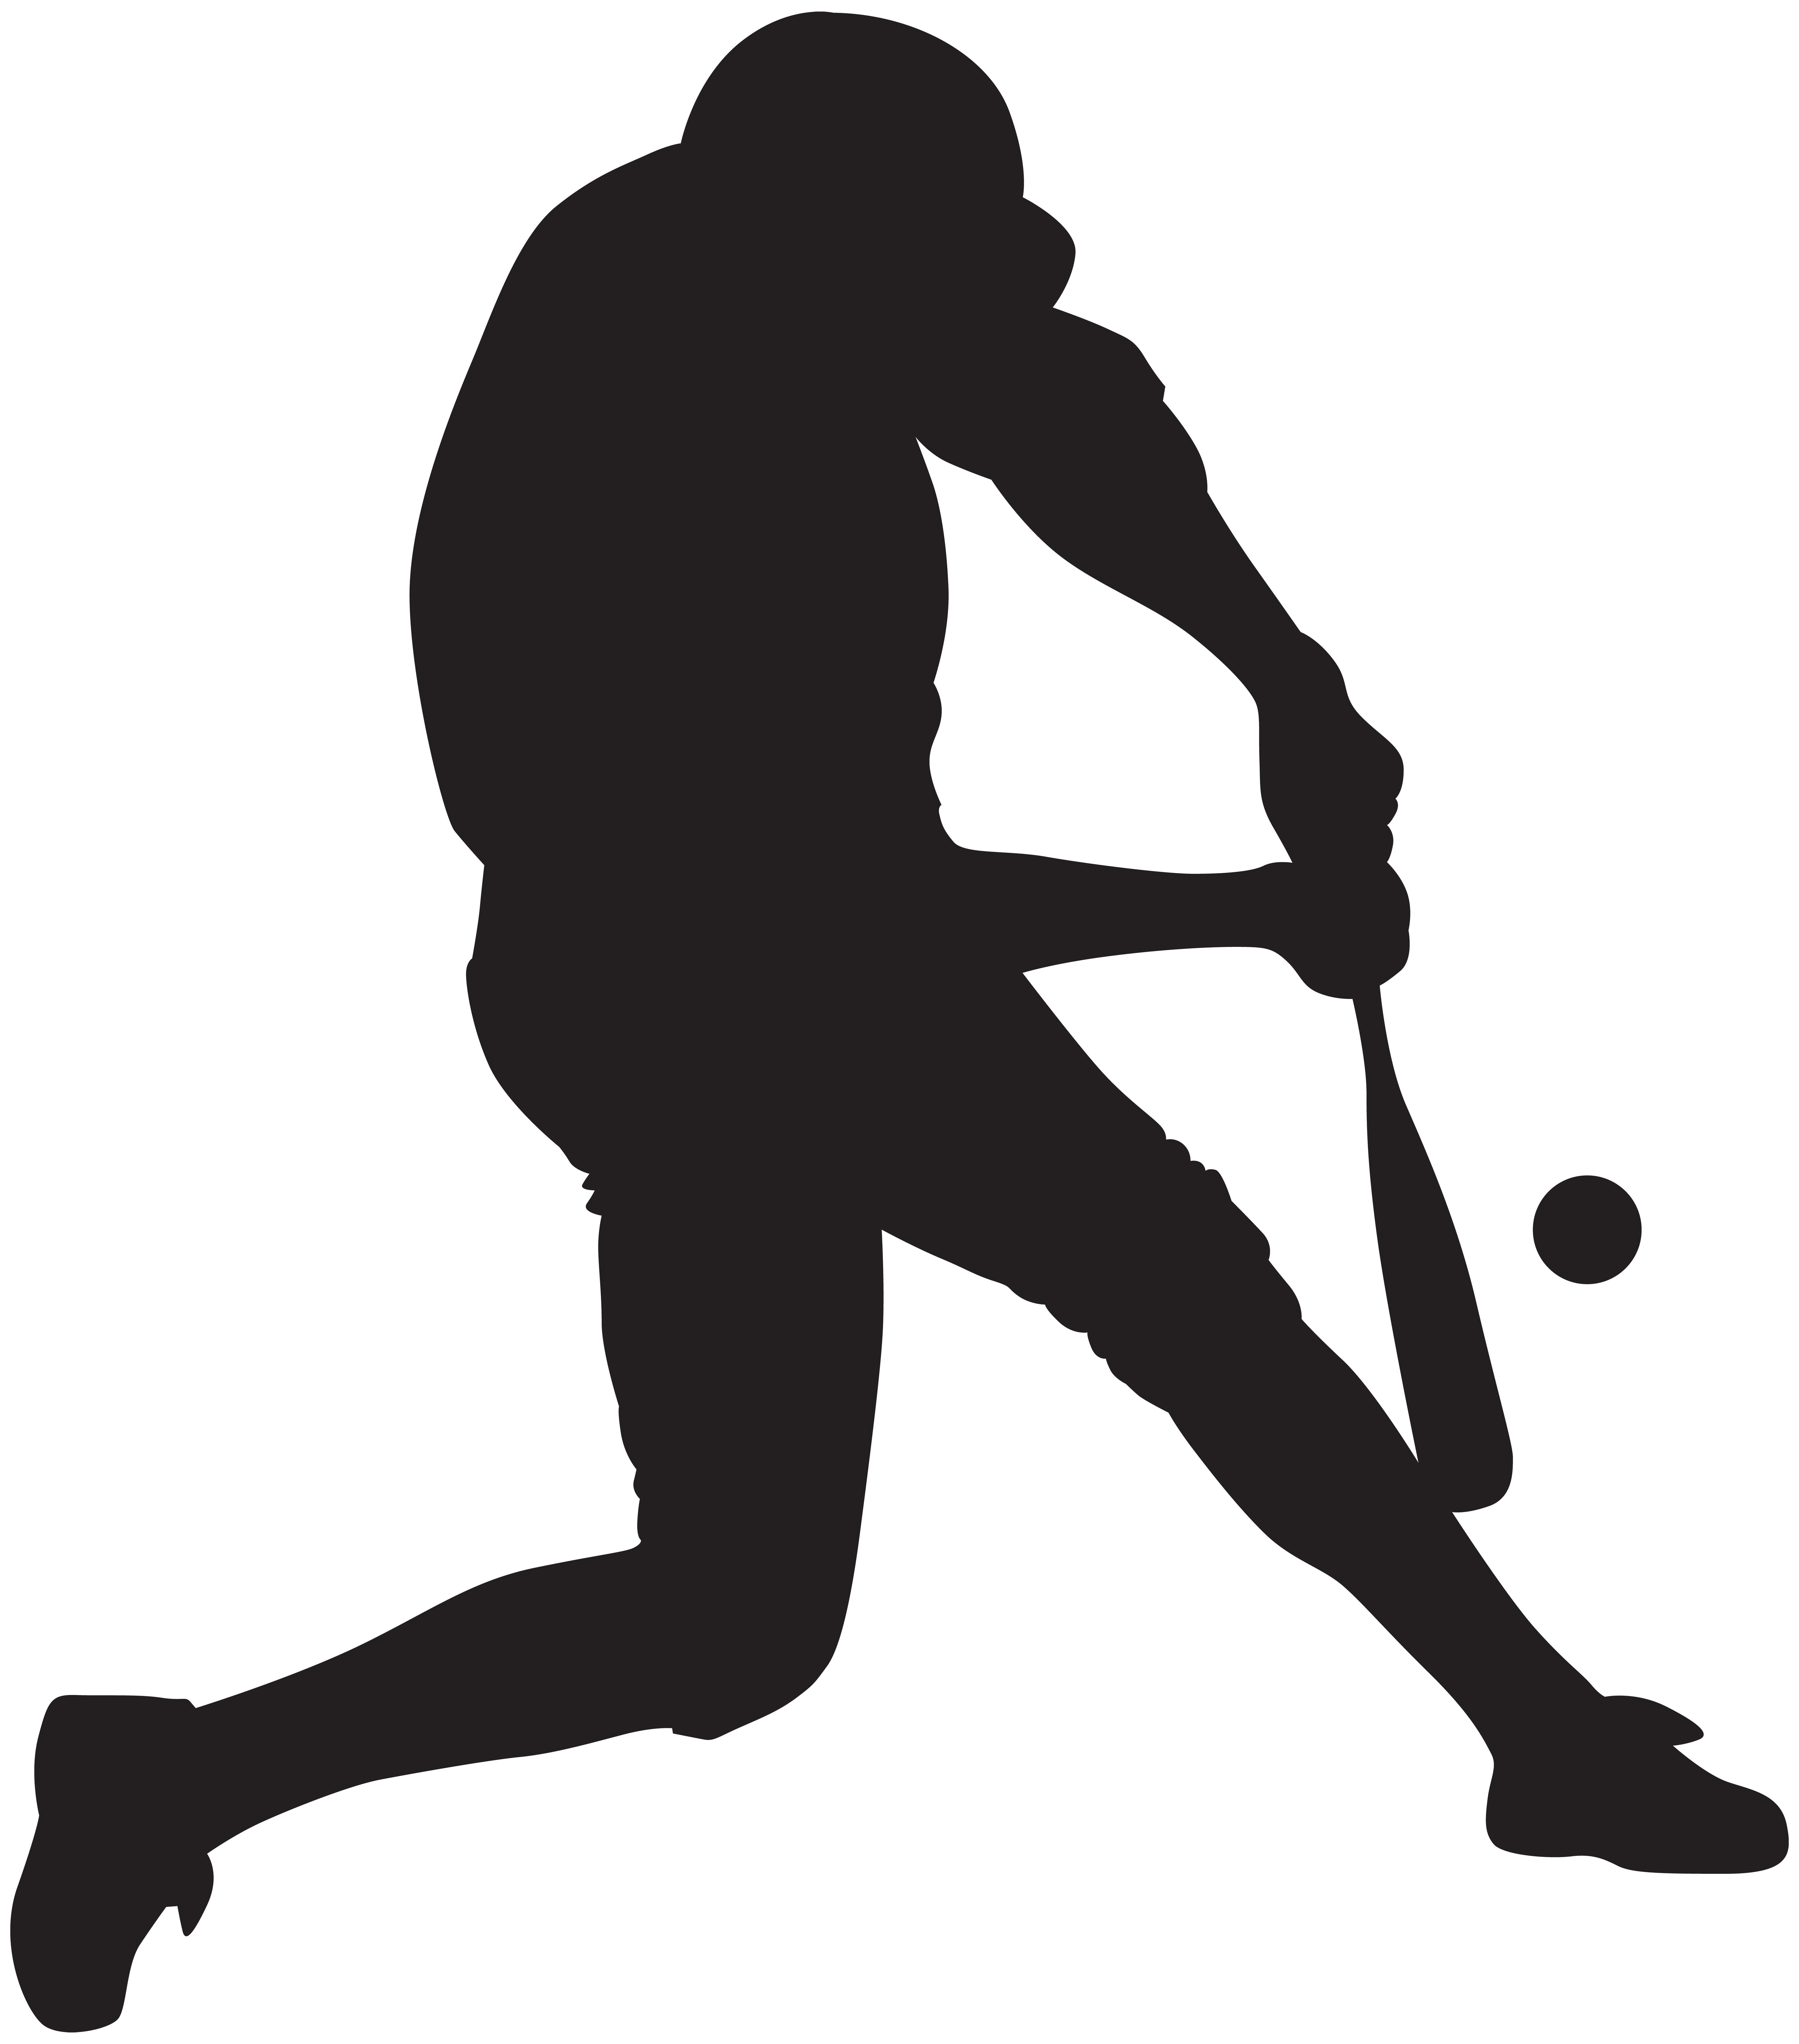 Baseball Player Silhouette PNG Clip Art Image.